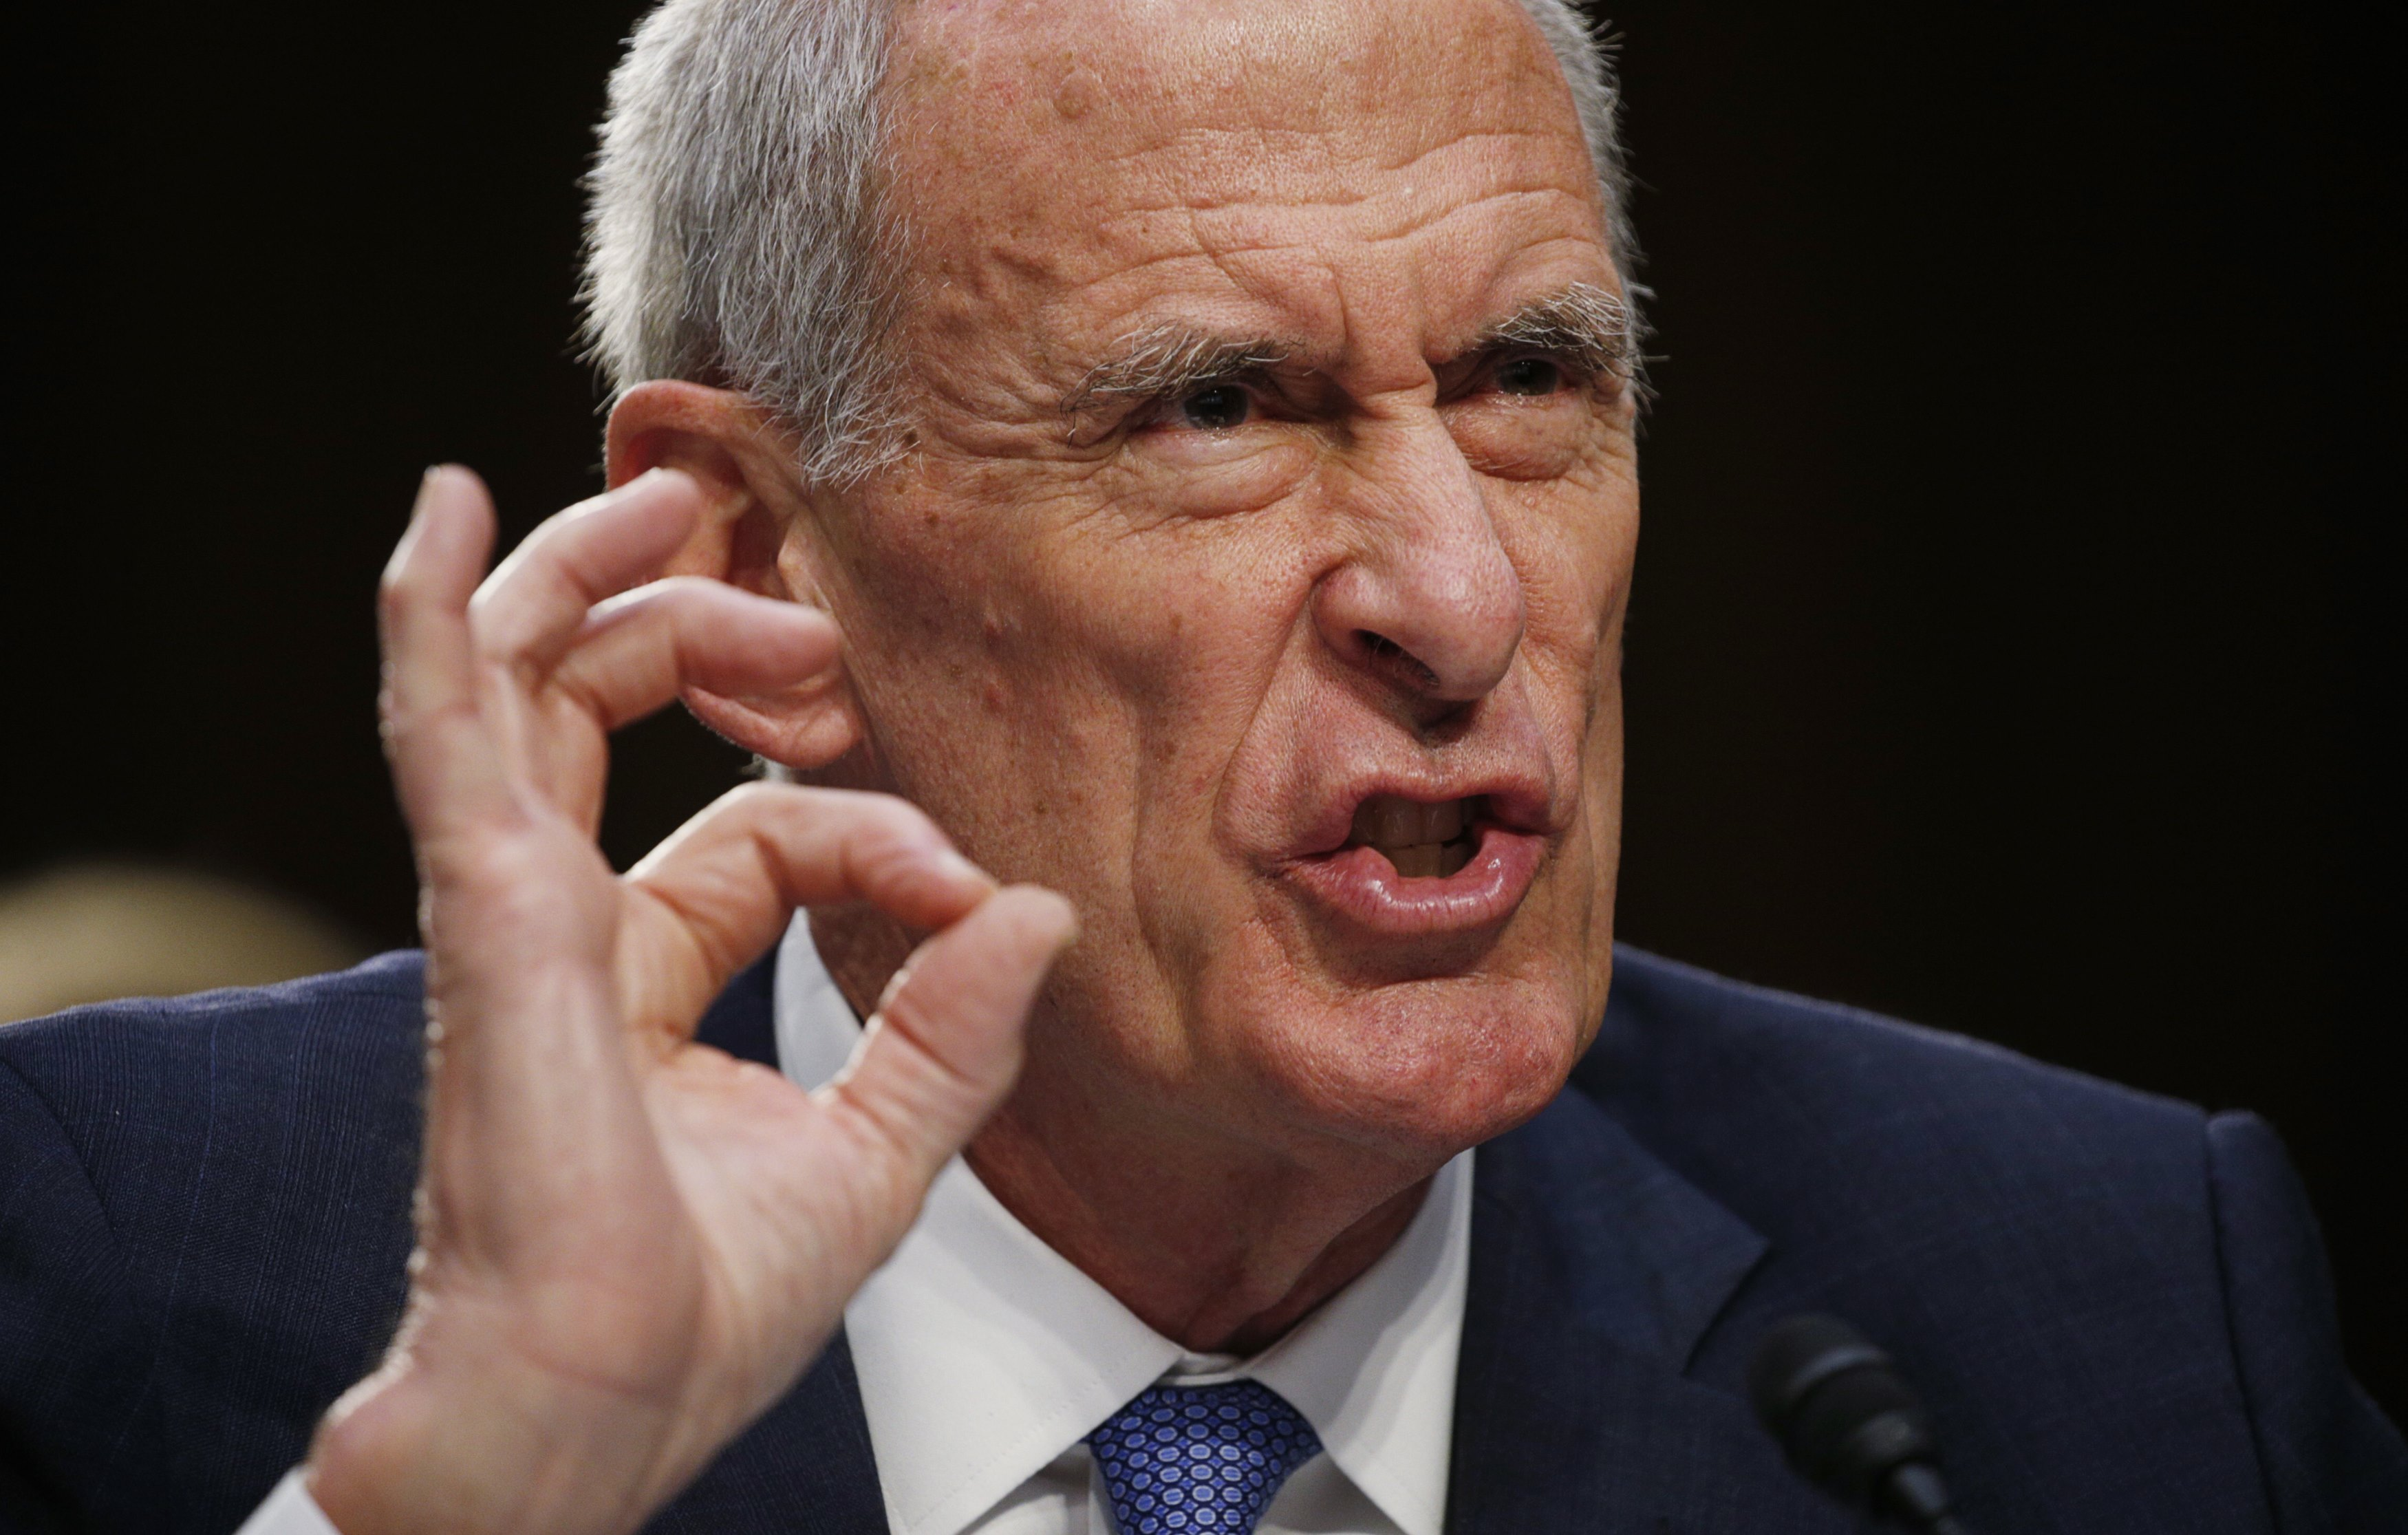 Director of National Intelligence Daniel Coats testifies at a Senate Intelligence Committee hearing on his interactions with the Trump White House and on the Foreign Intelligence Surveillance Act (FISA) in Washington on June 7, 2017. (REUTERS/Kevin Lamarque)